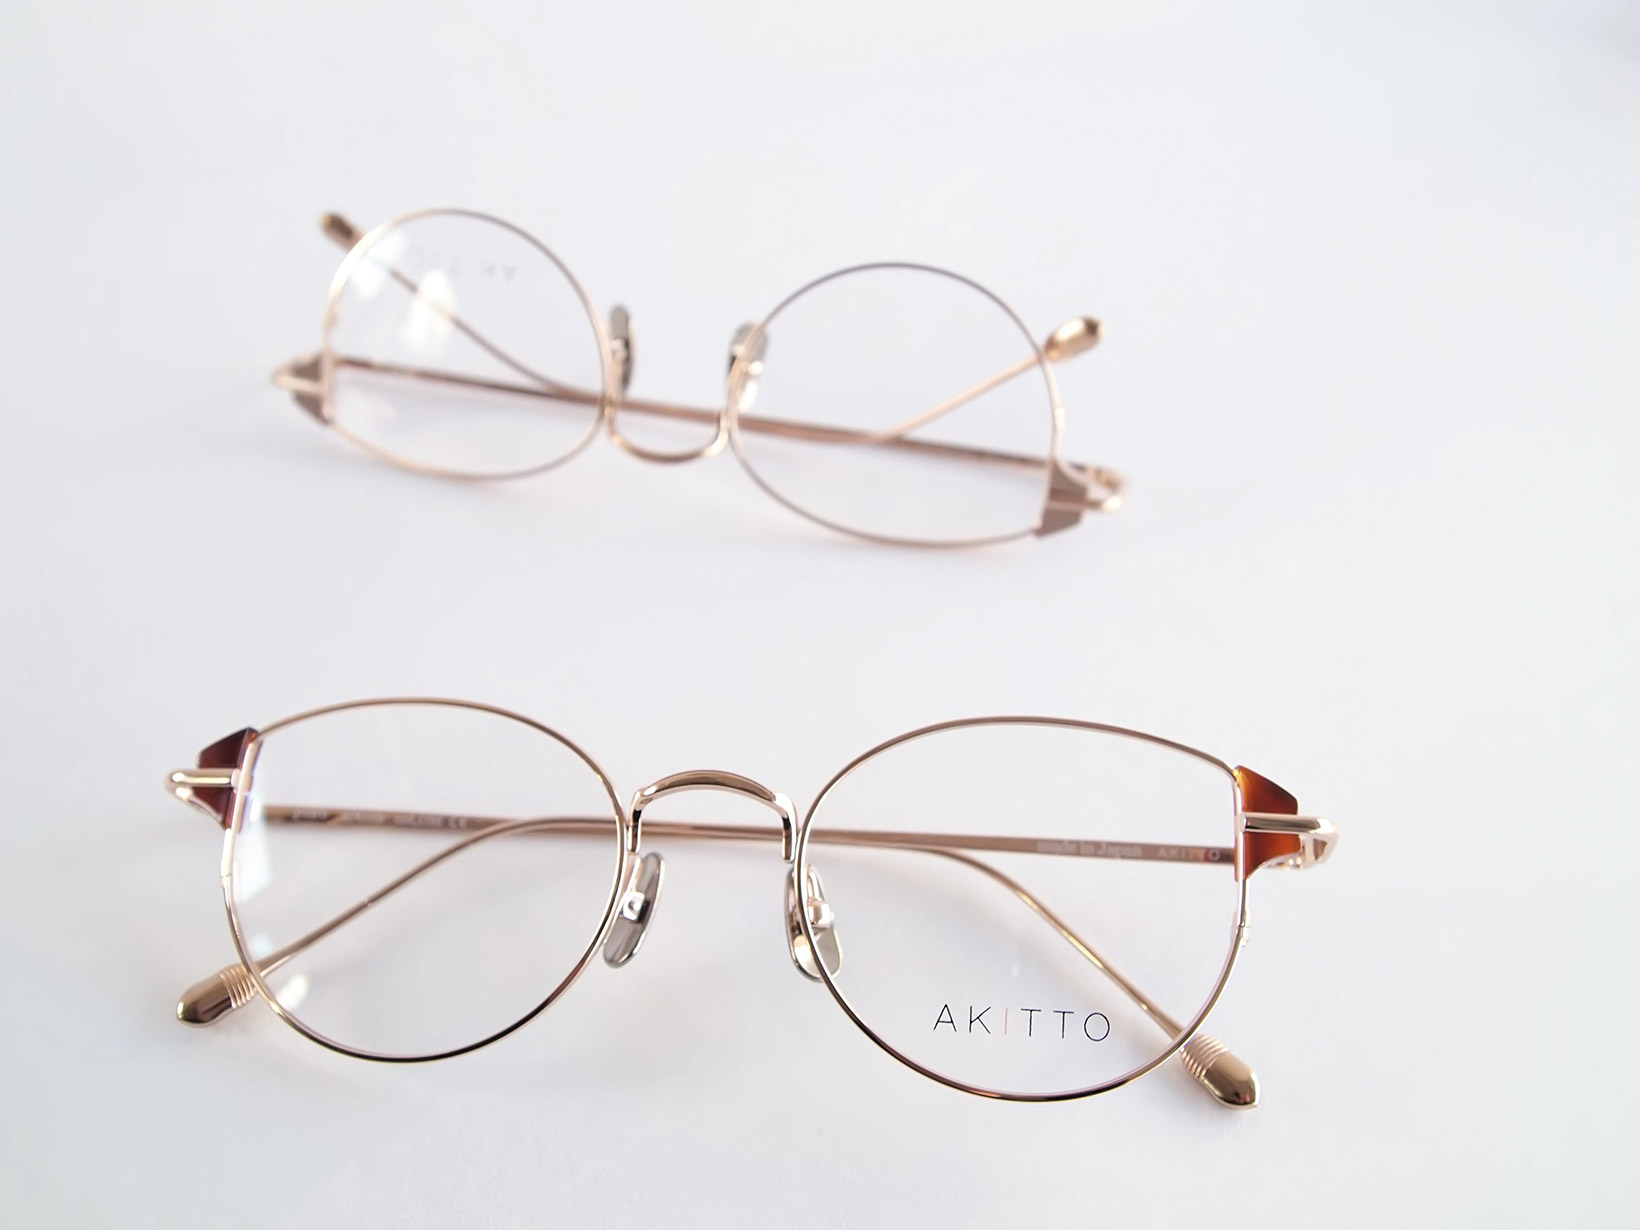 AKITTO 2019-1st pin6 size:47□19 material:titanium+acetate price:¥42,000-(+tax)